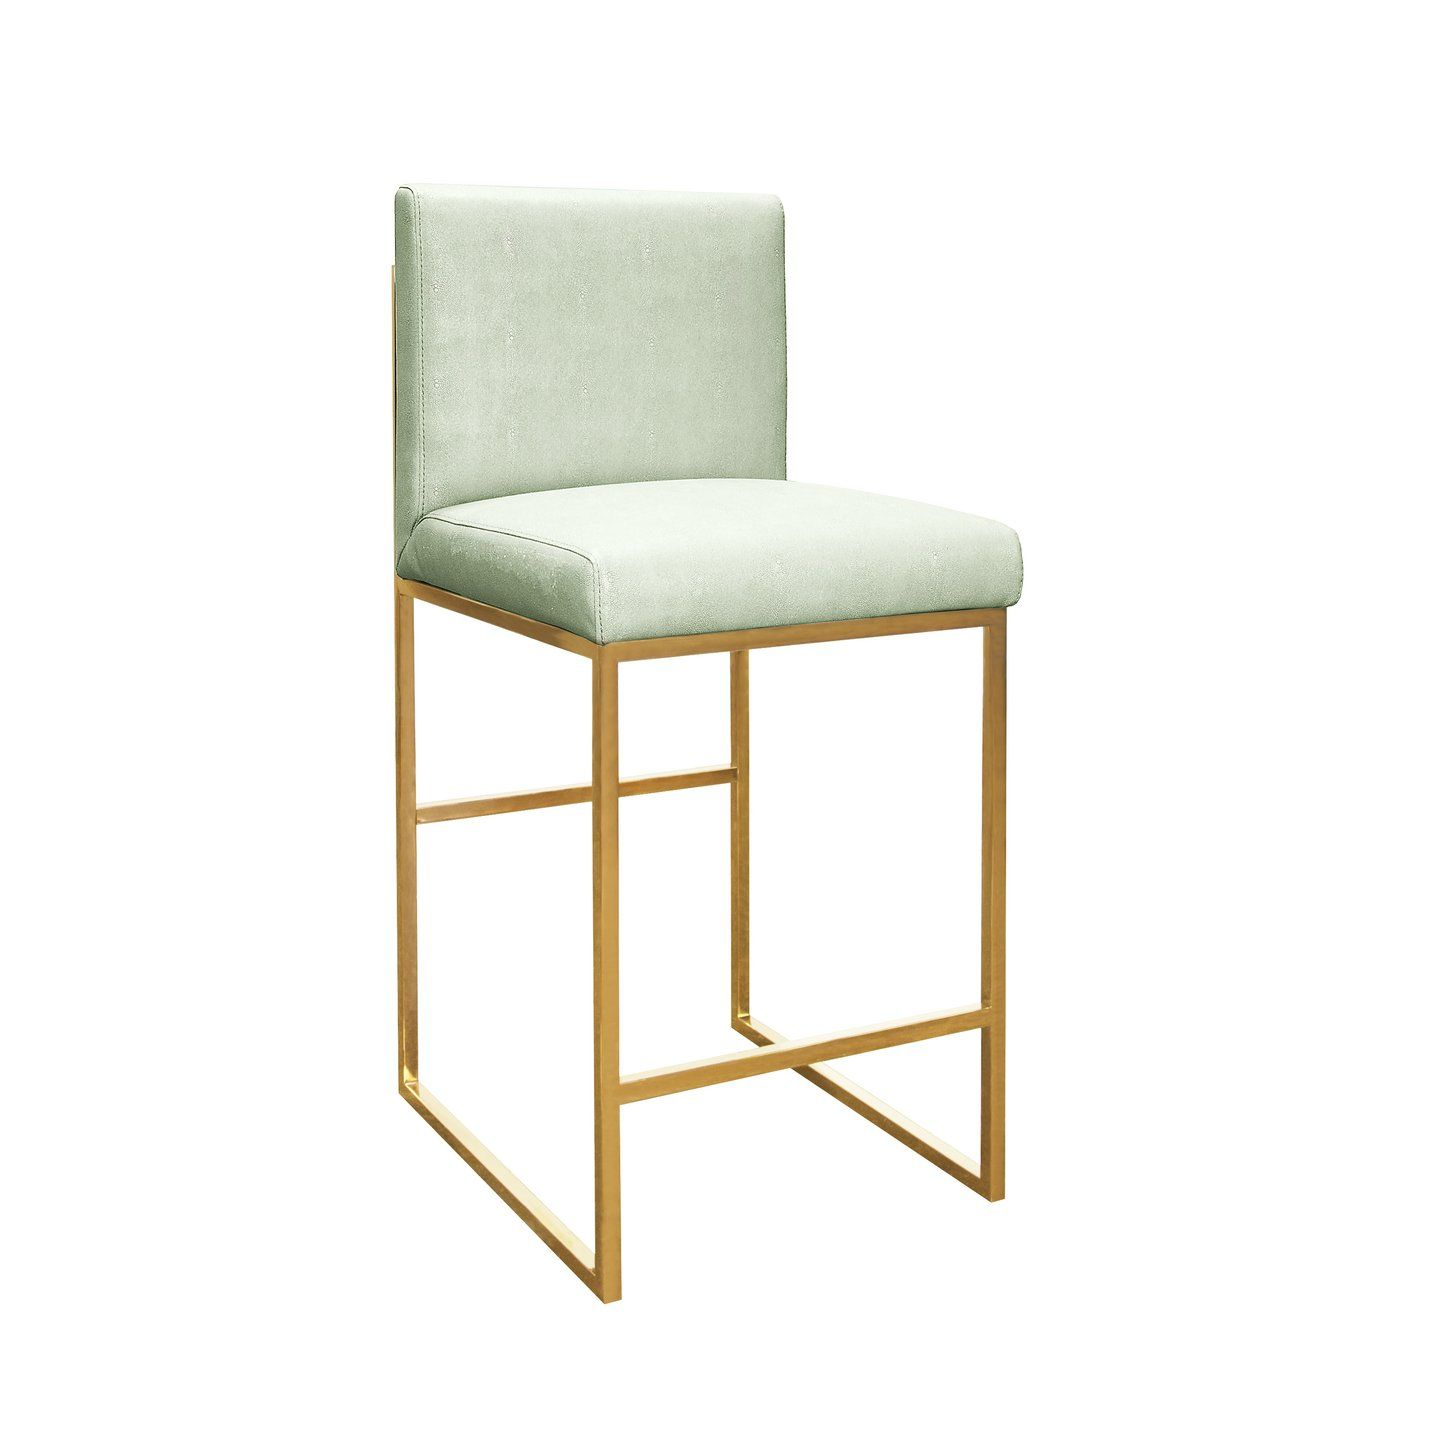 The Worlds Away Kingston Green Counter Stool In Brass Showcases A